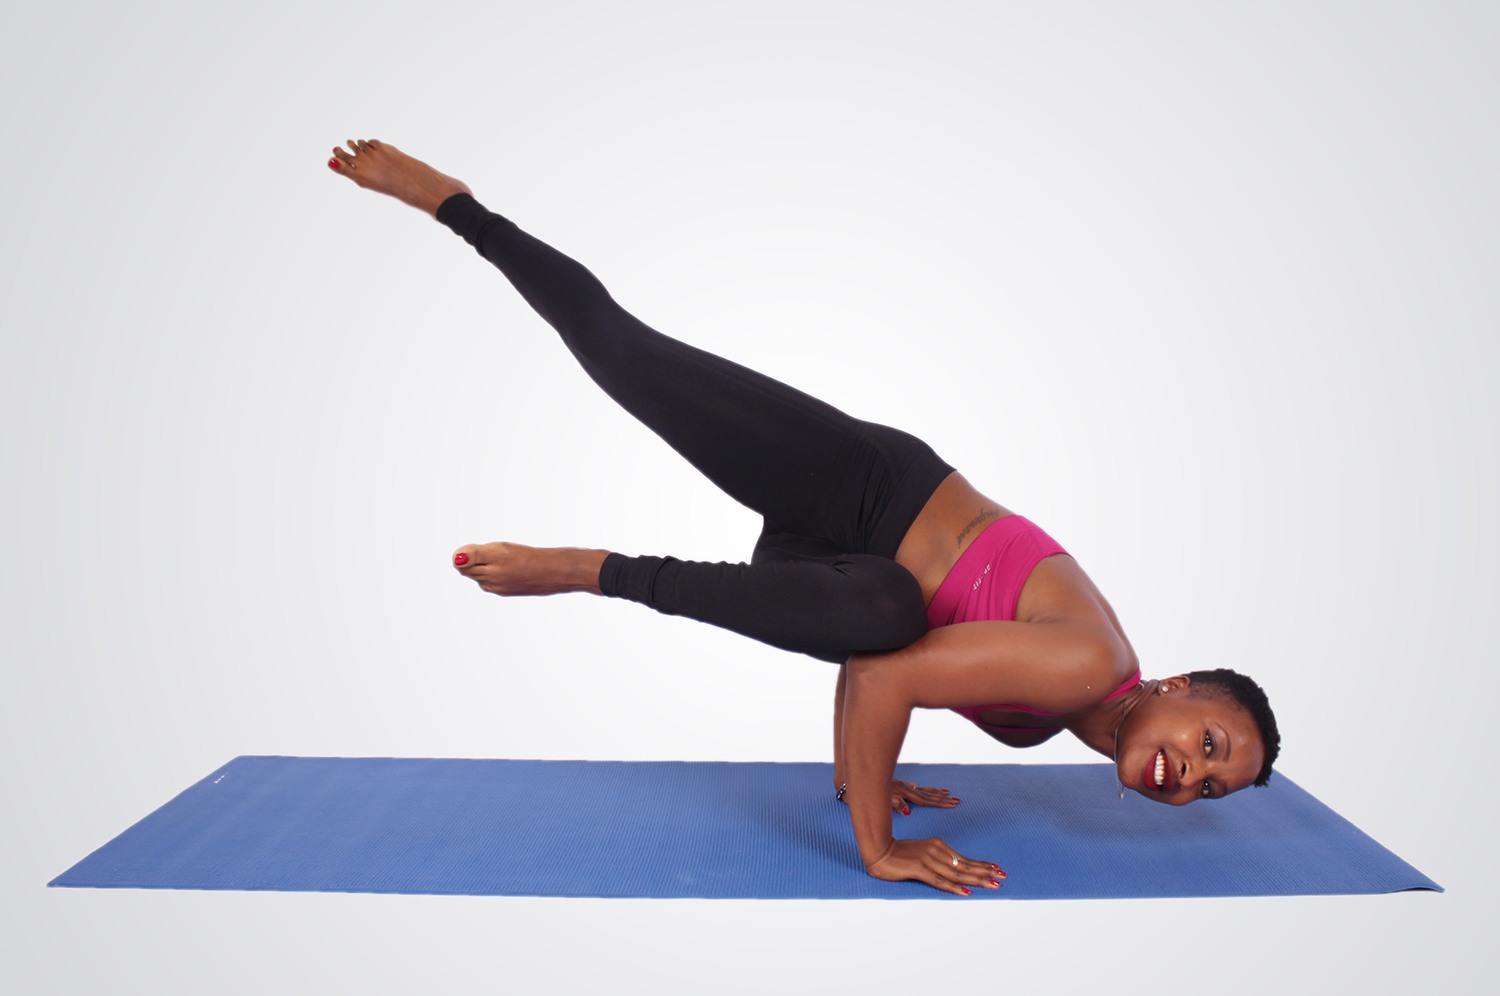 Woman doing yoga pose legs in the air